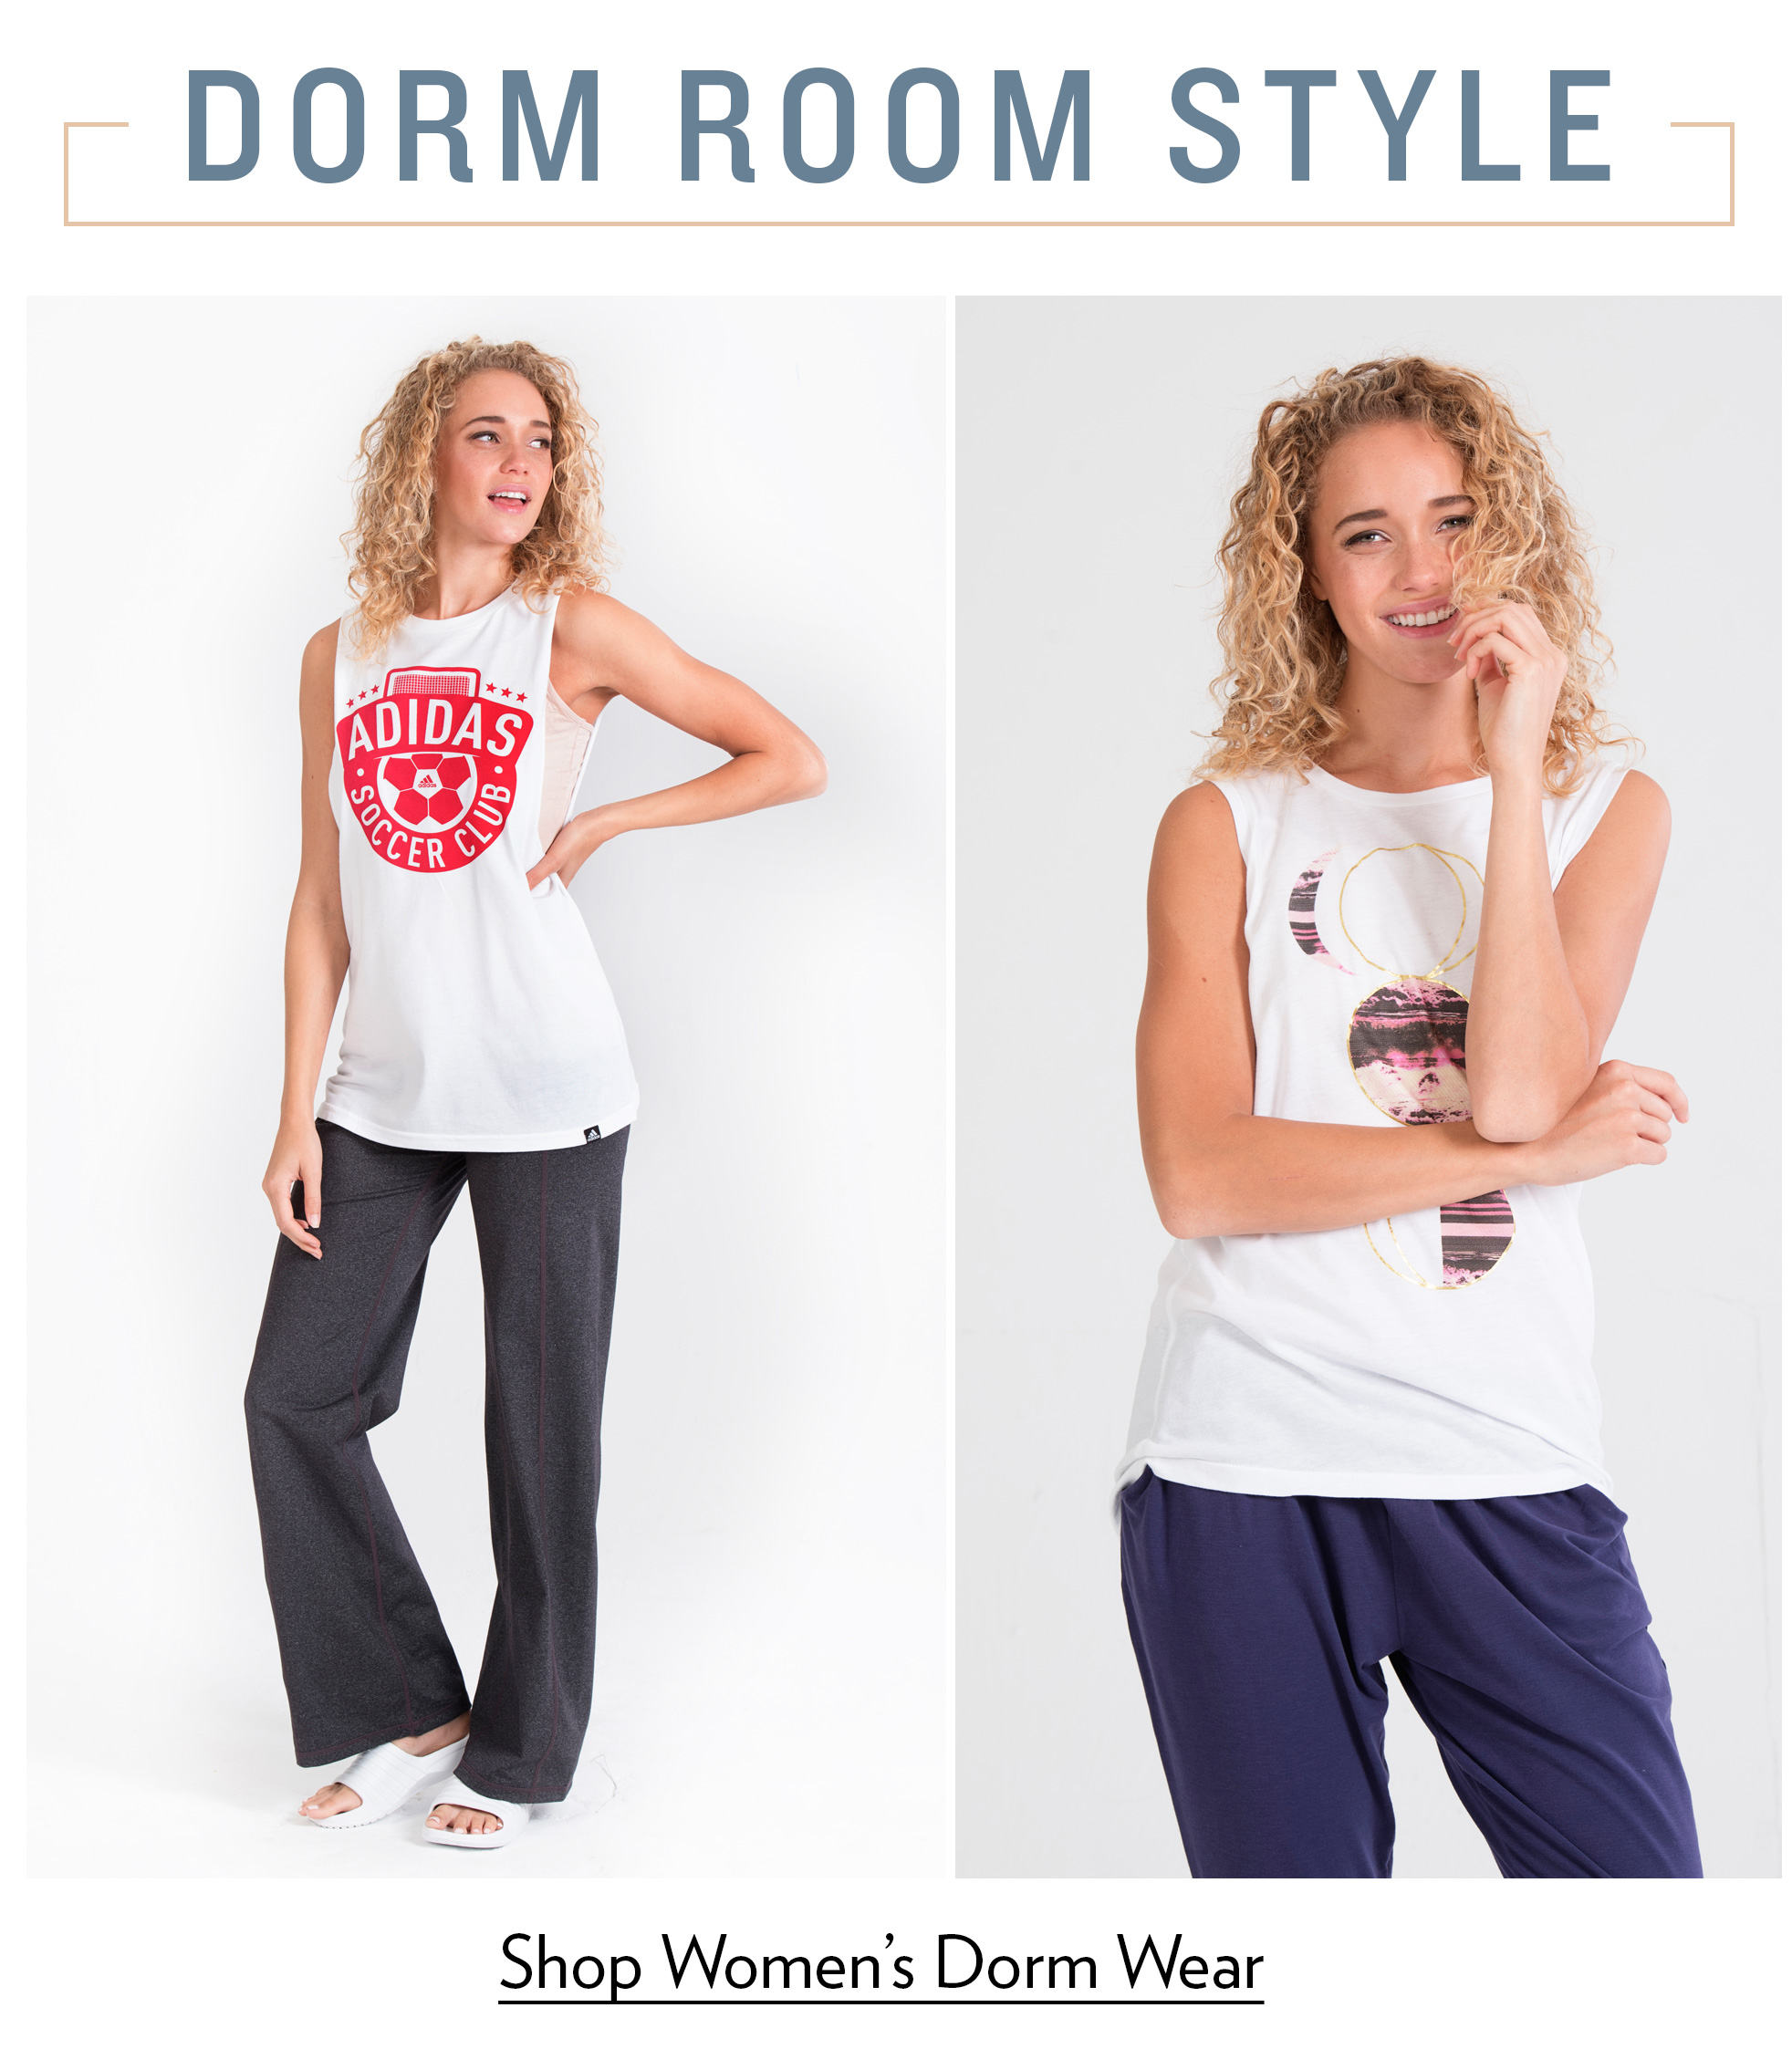 Women's Dorm Wear